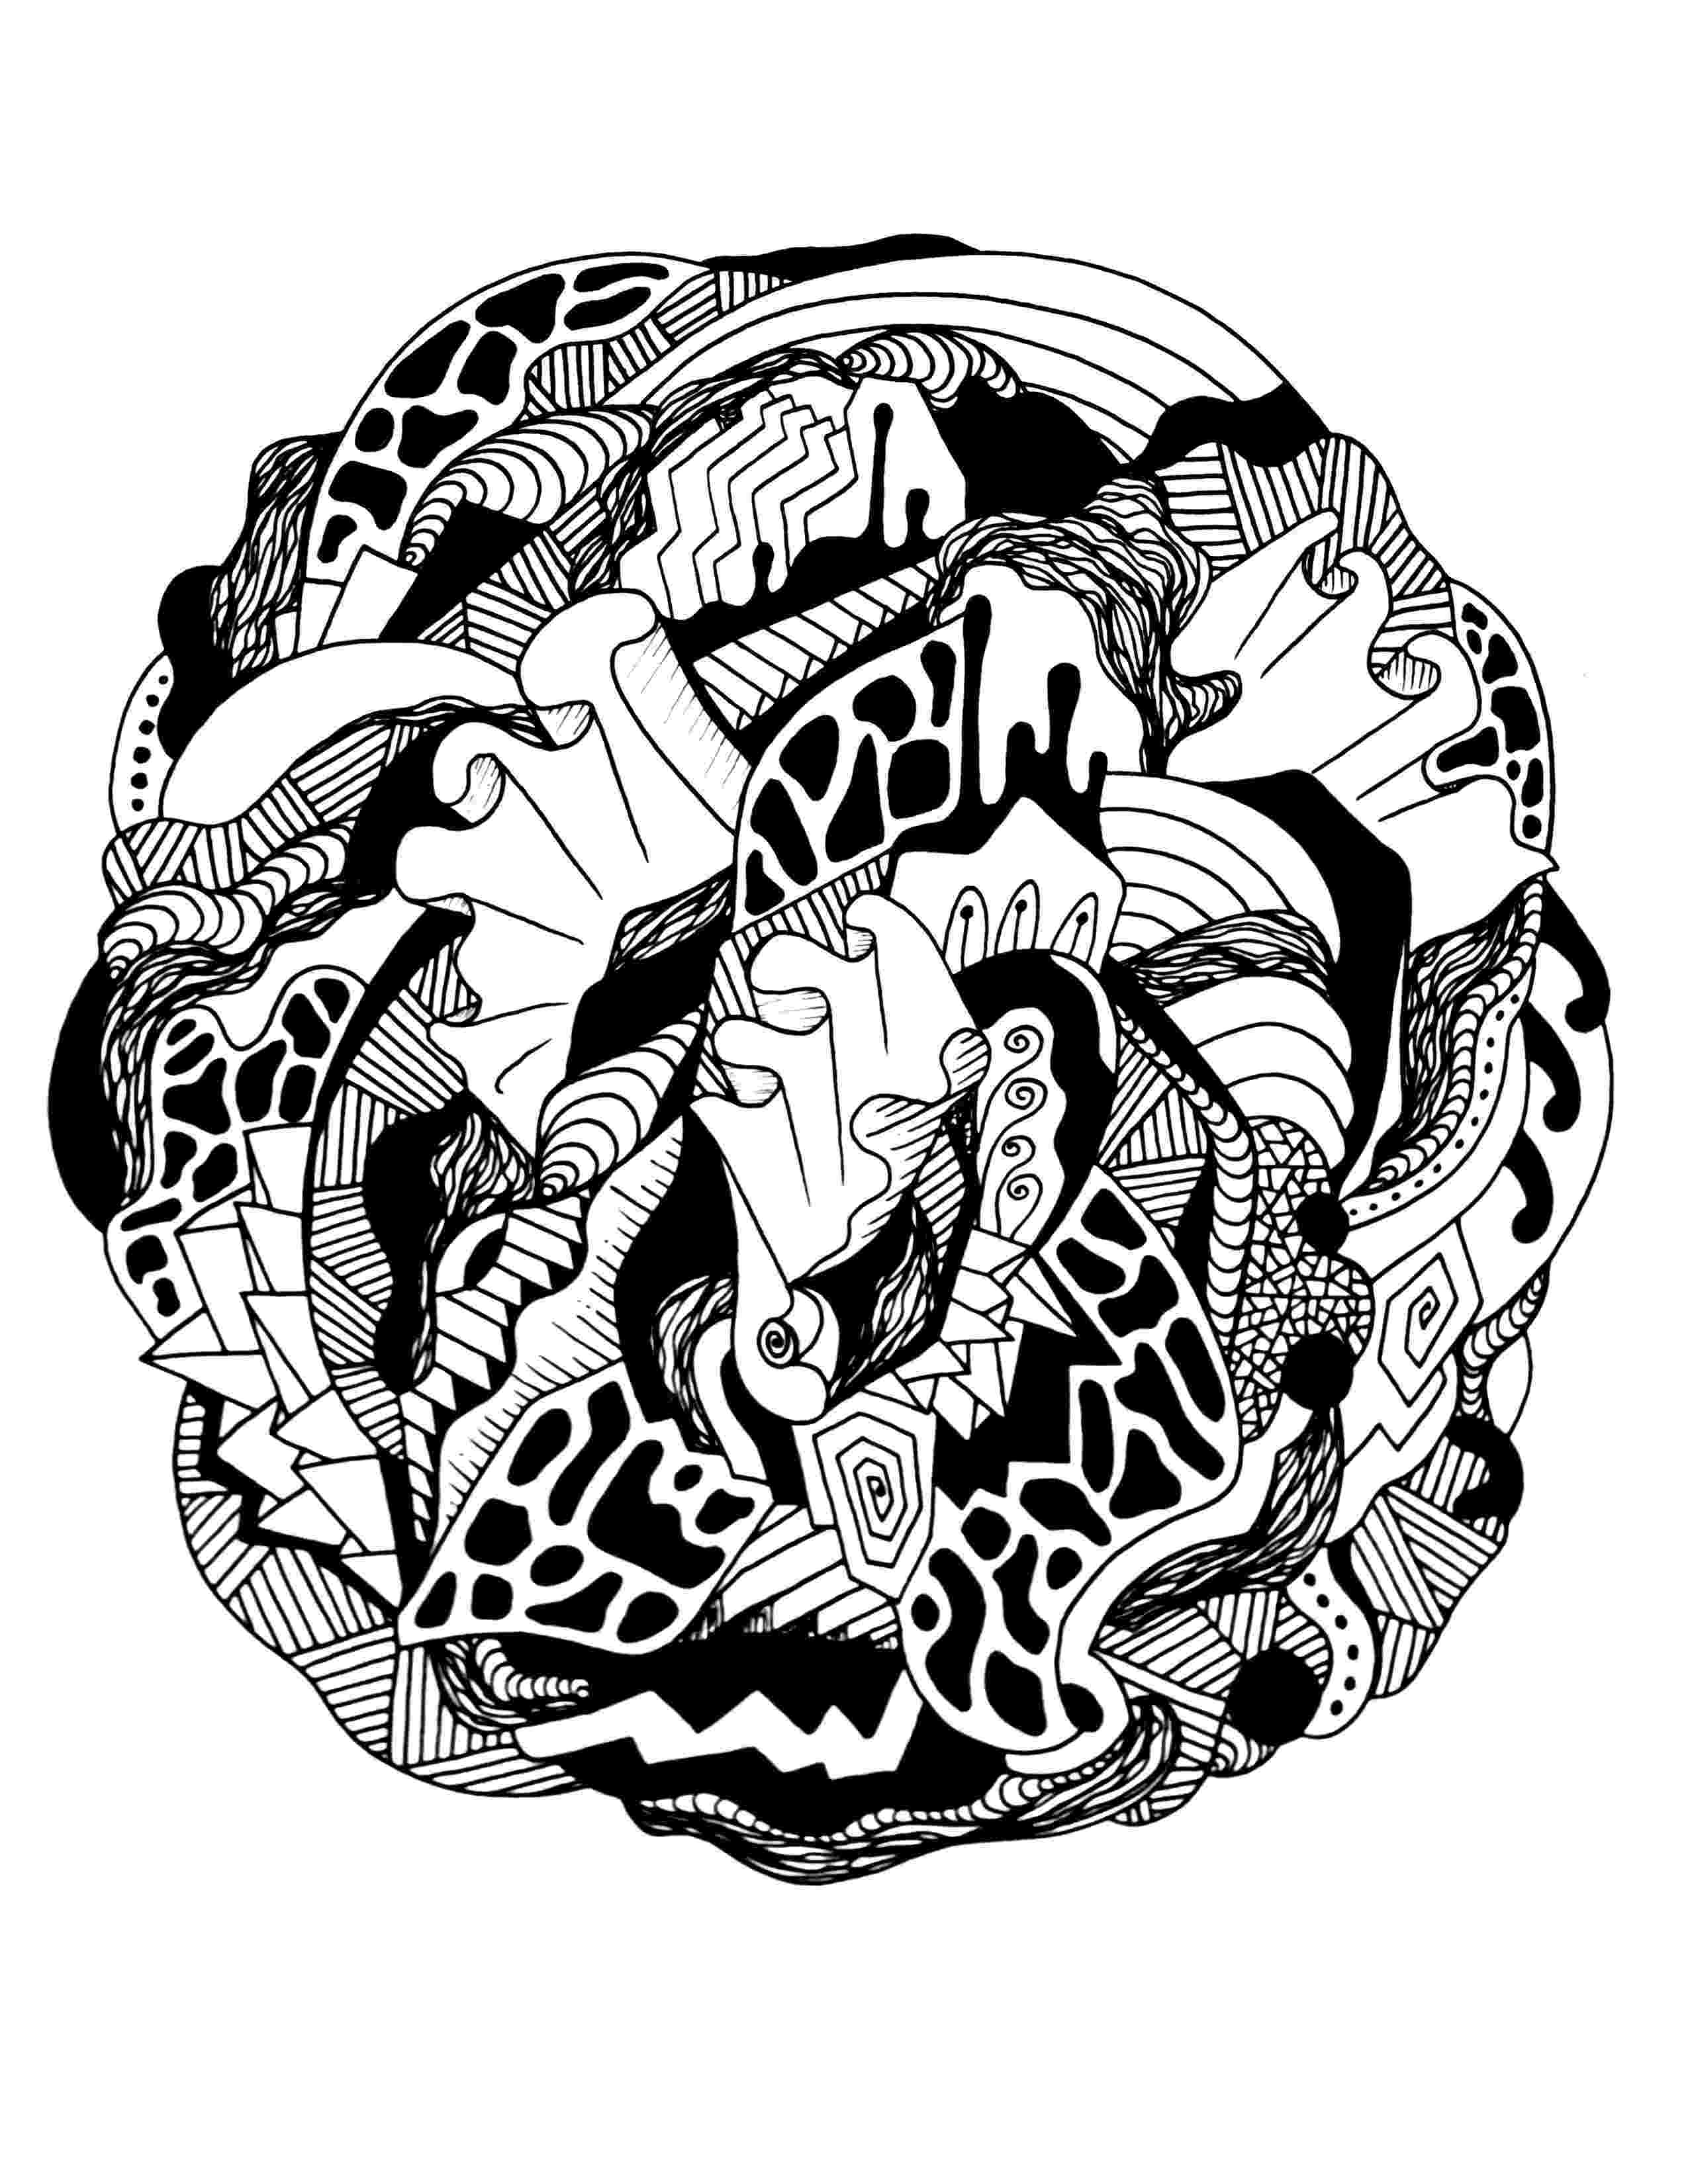 cool abstract coloring pages fun abstract coloring page craft free coloring pages pages abstract coloring cool